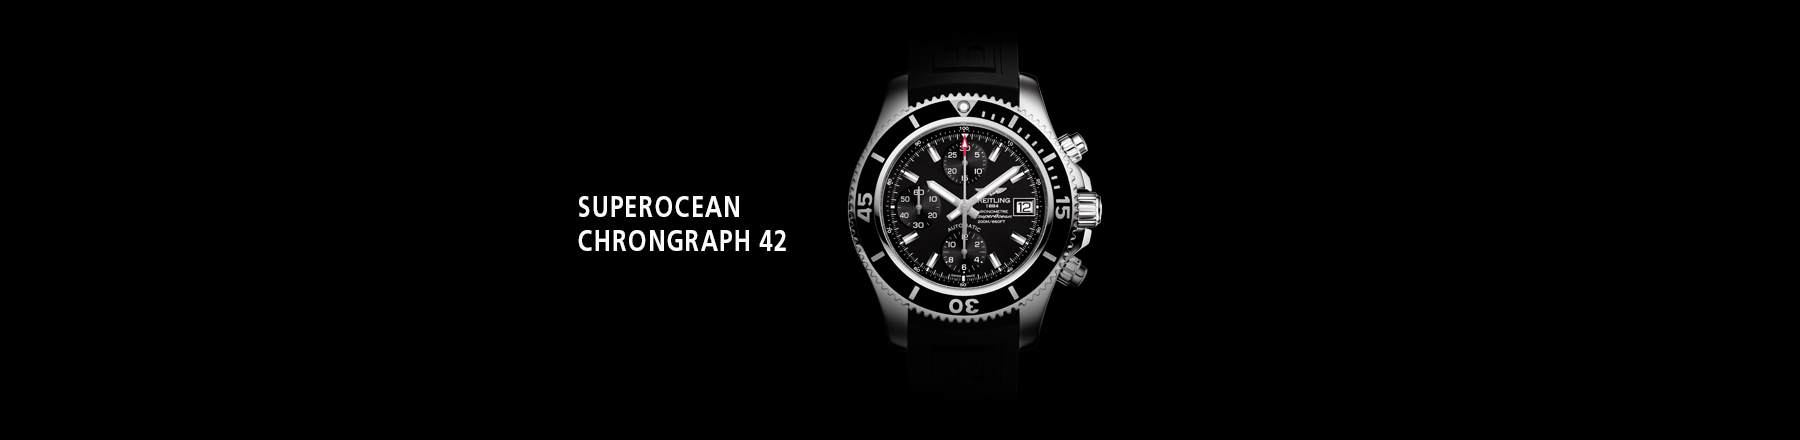 SUPEROCEAN CHRONGRAPH 42